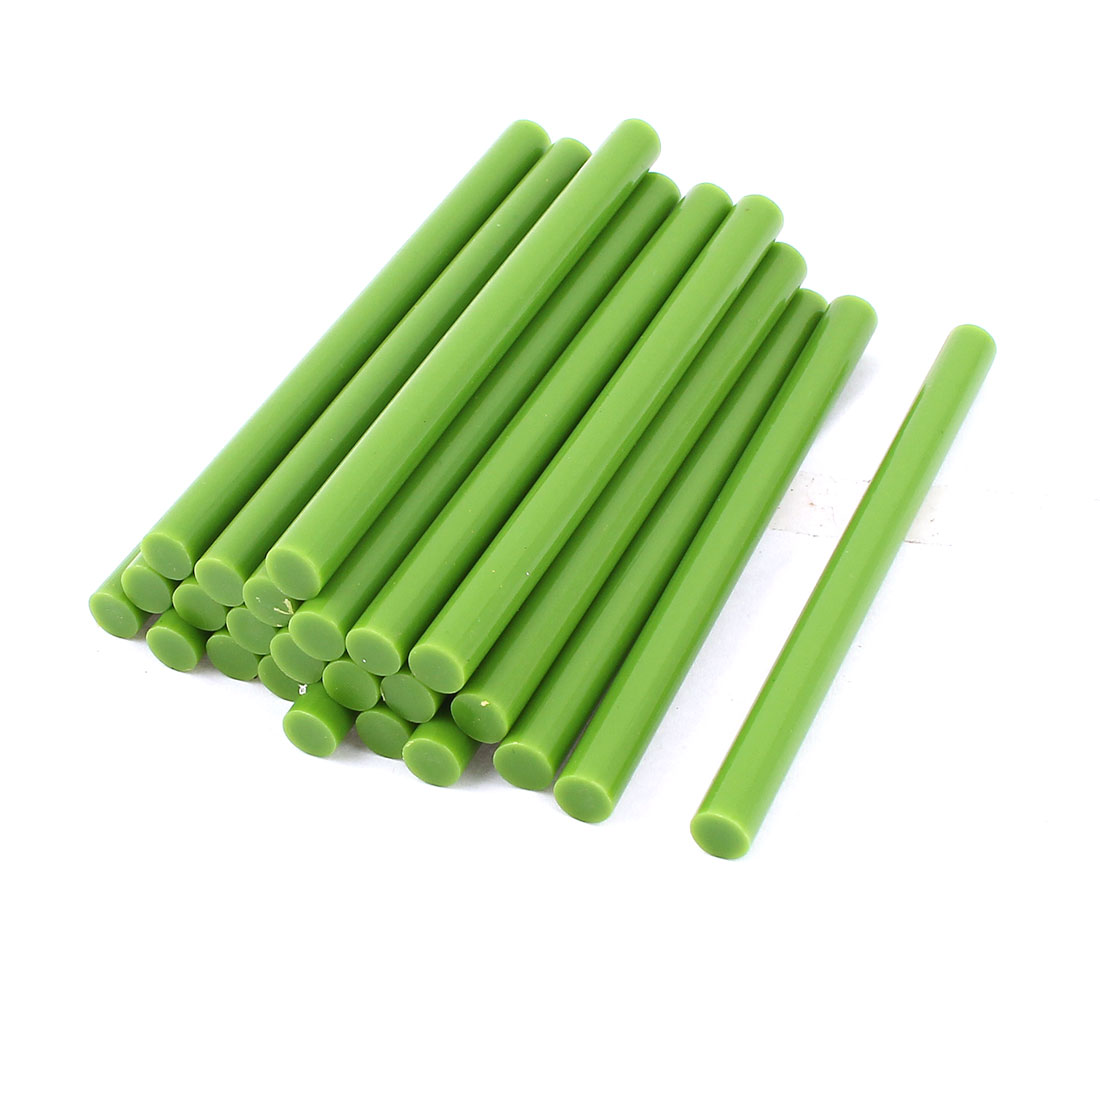 24 Pcs 7mm Diameter 100mm Long Crafting Models Green Plastic Hot Melt Glue Stick